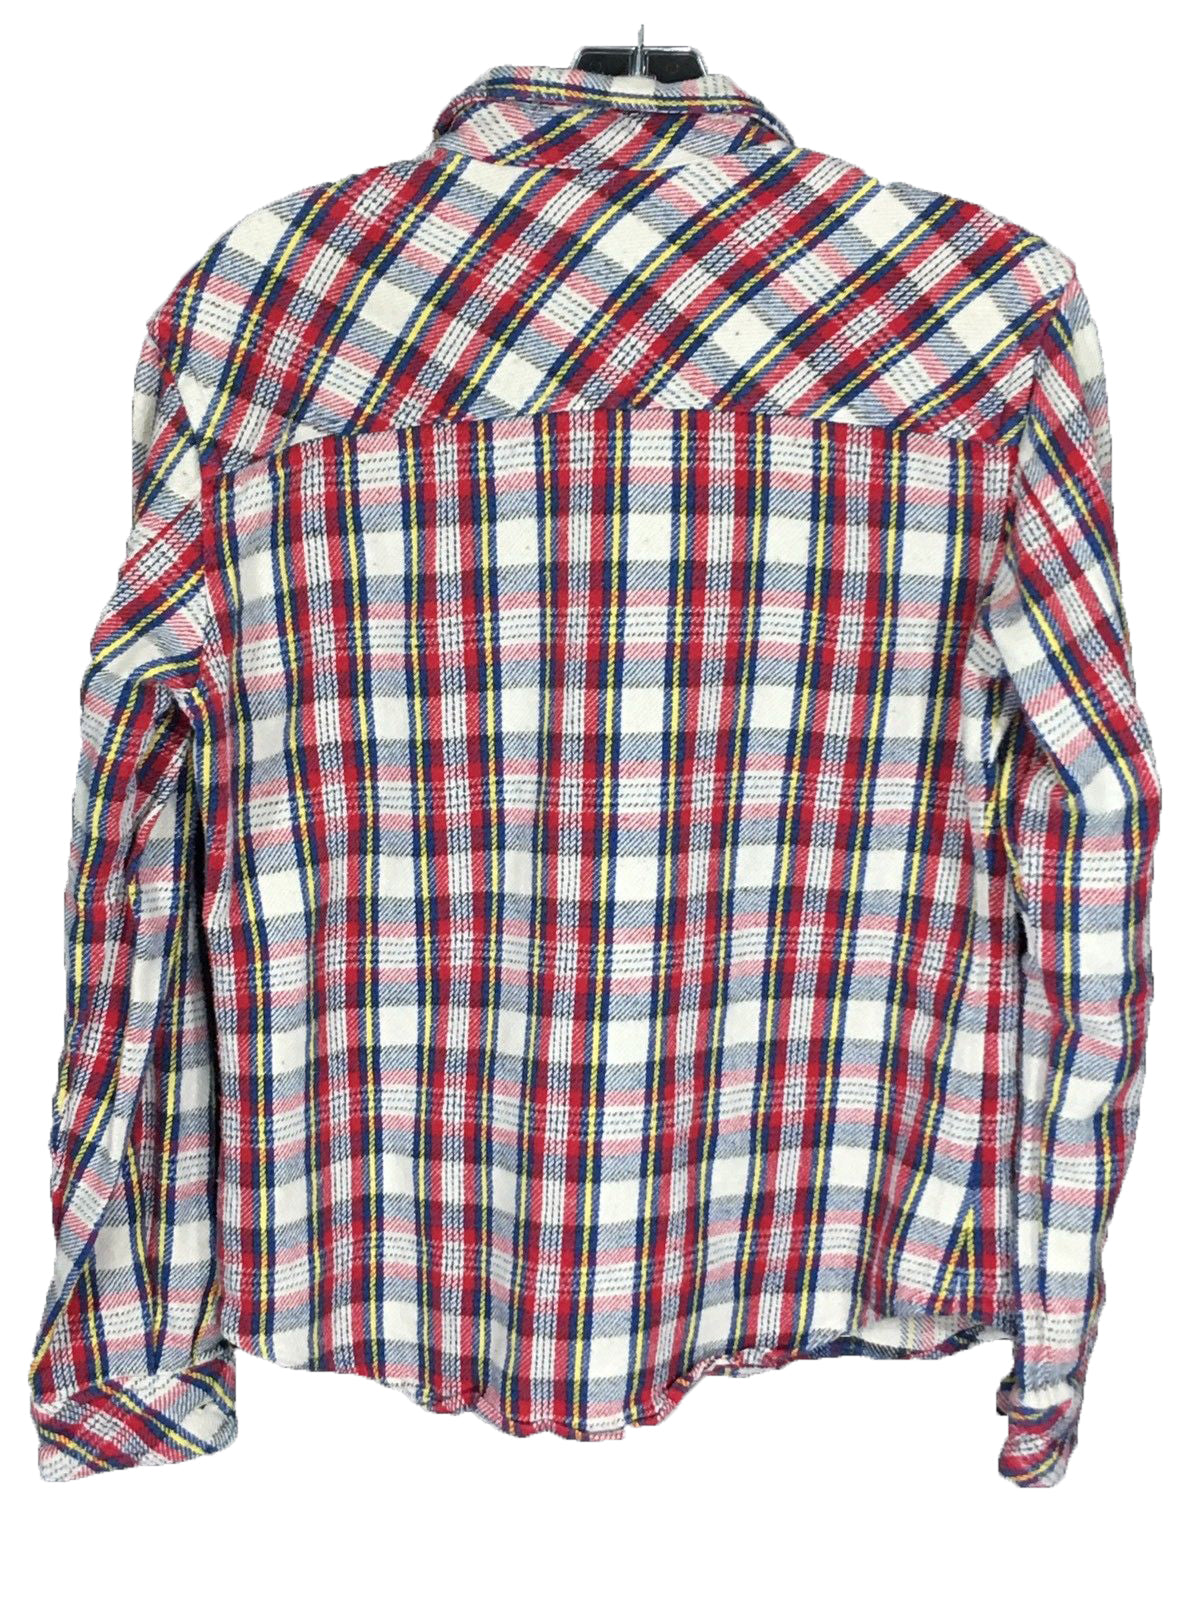 2a4eb140ea57 ... Salt Valley Plaid Flannel Button Down Shirt Red Yellow Blue Pockets  Mens Small S - FunkyCrap ...